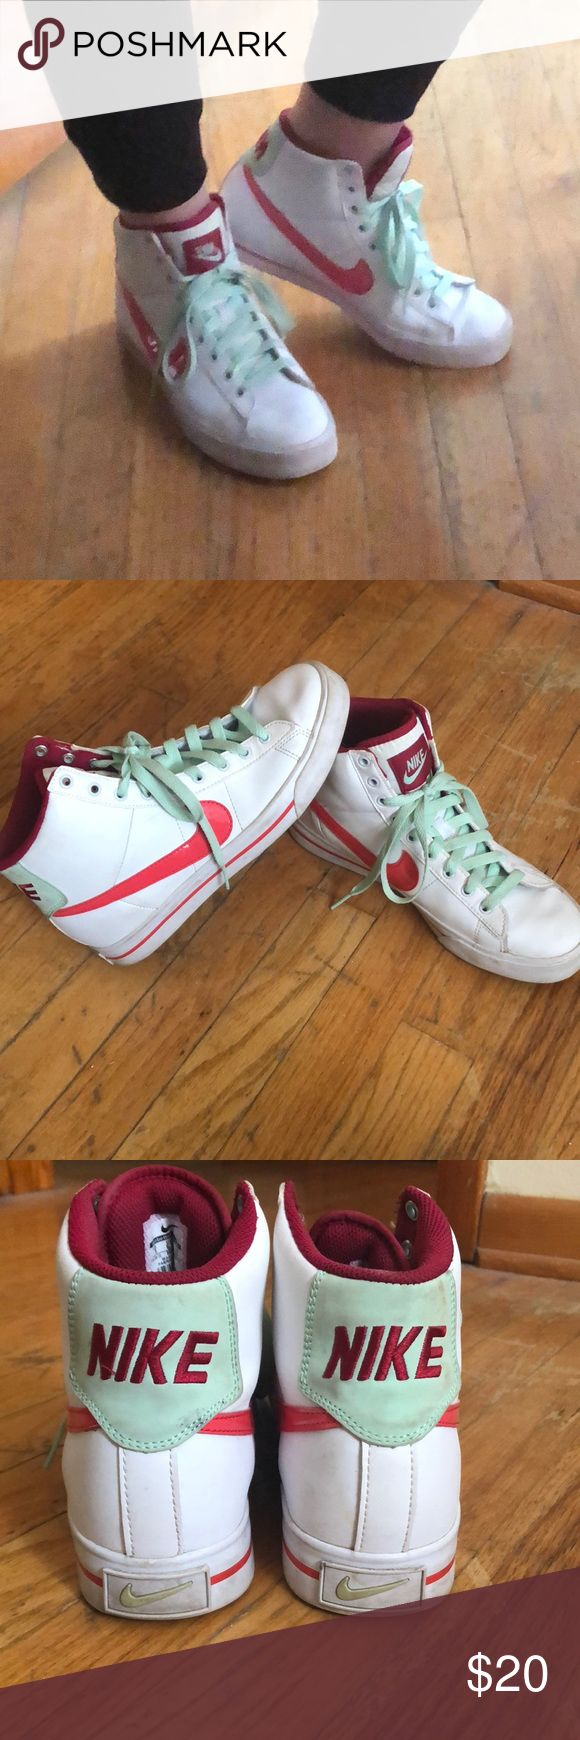 Vintage Nike Hi-Tops Super cool old school looking Nike Hi-Tops. Unique colors. White burgundy, coral, and light green for the laces. Few signs of wear. The tag says a US size 9. I am a size 8 1/2 and these fit great! Shoes Sneakers